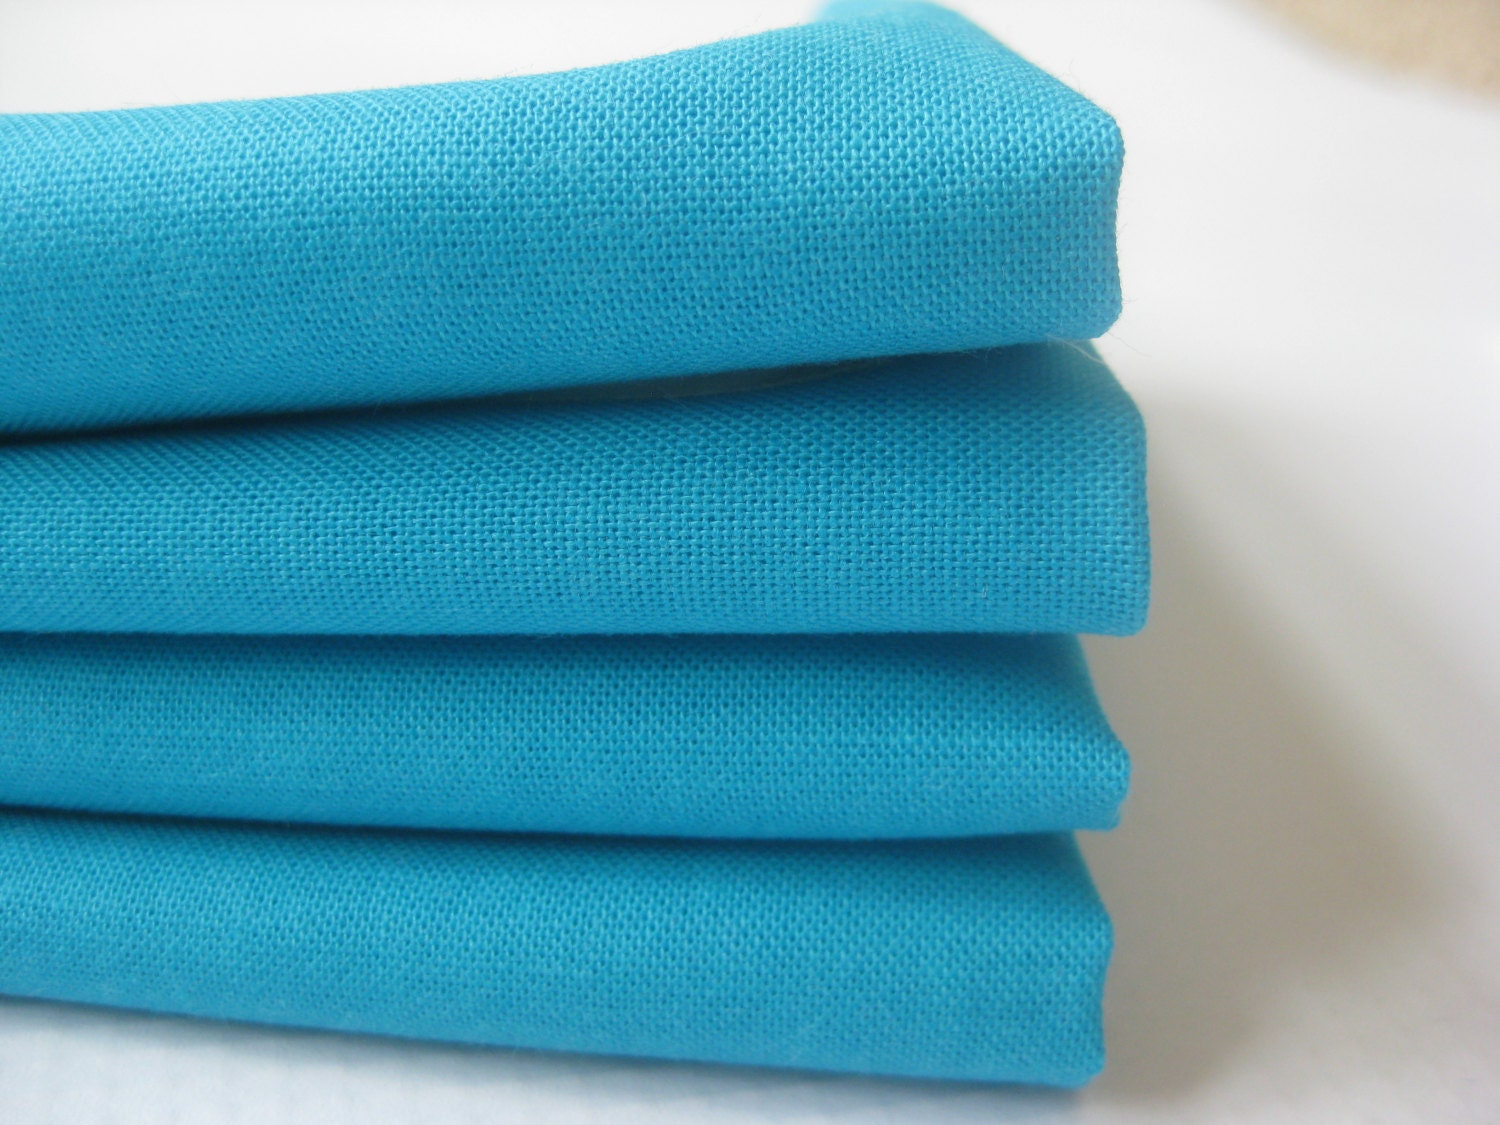 ʺW × 32ʺD × ʺH Set of twelve teal French hand-embroidered napkins. Large, dinner size in patterned damask. Newly hand-dyed with organic vegetable dye in Provence. Dyed in small batches, rinsed with lavender water, starched and ironed.